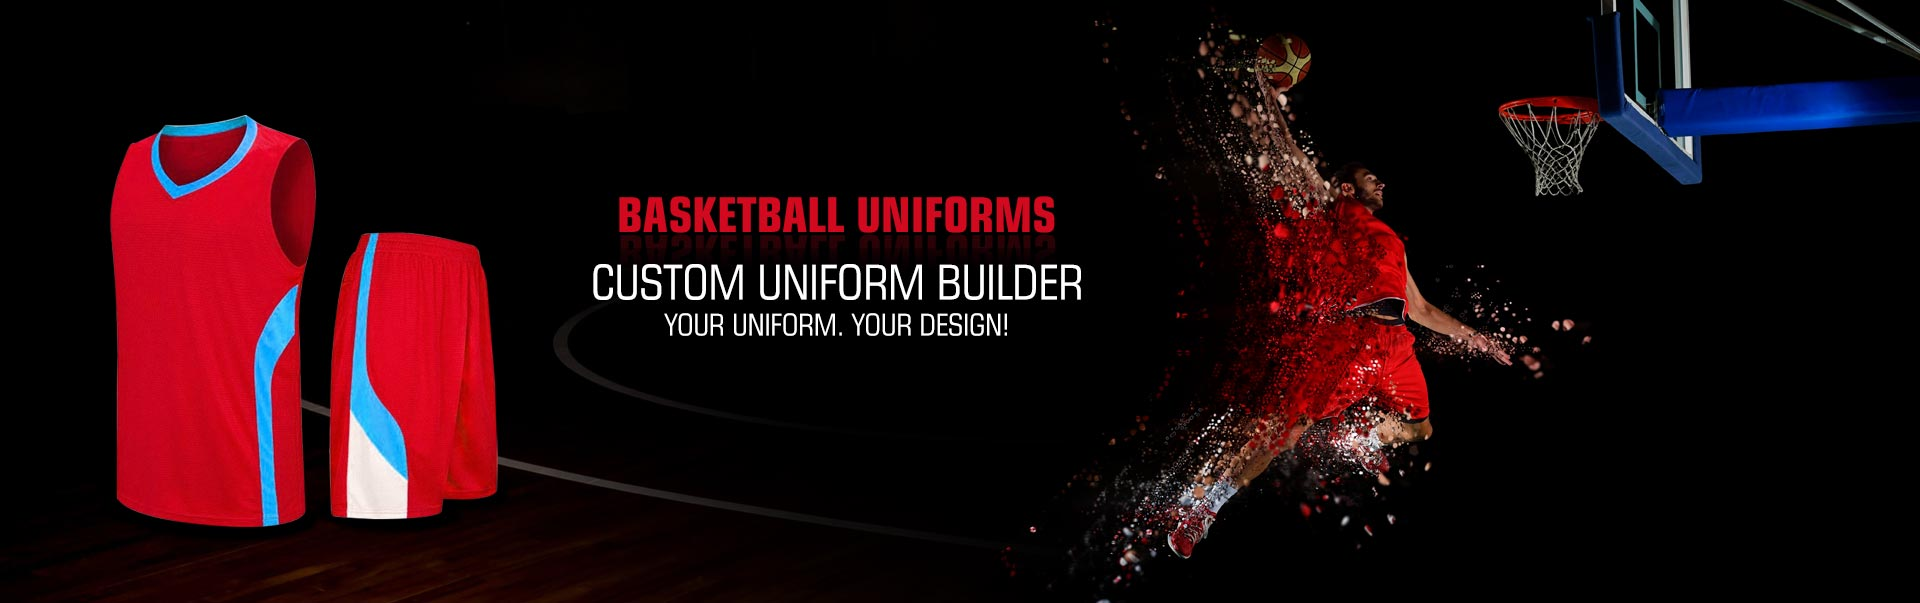 Basketball Uniforms Wholesaler, Suppliers in Truro